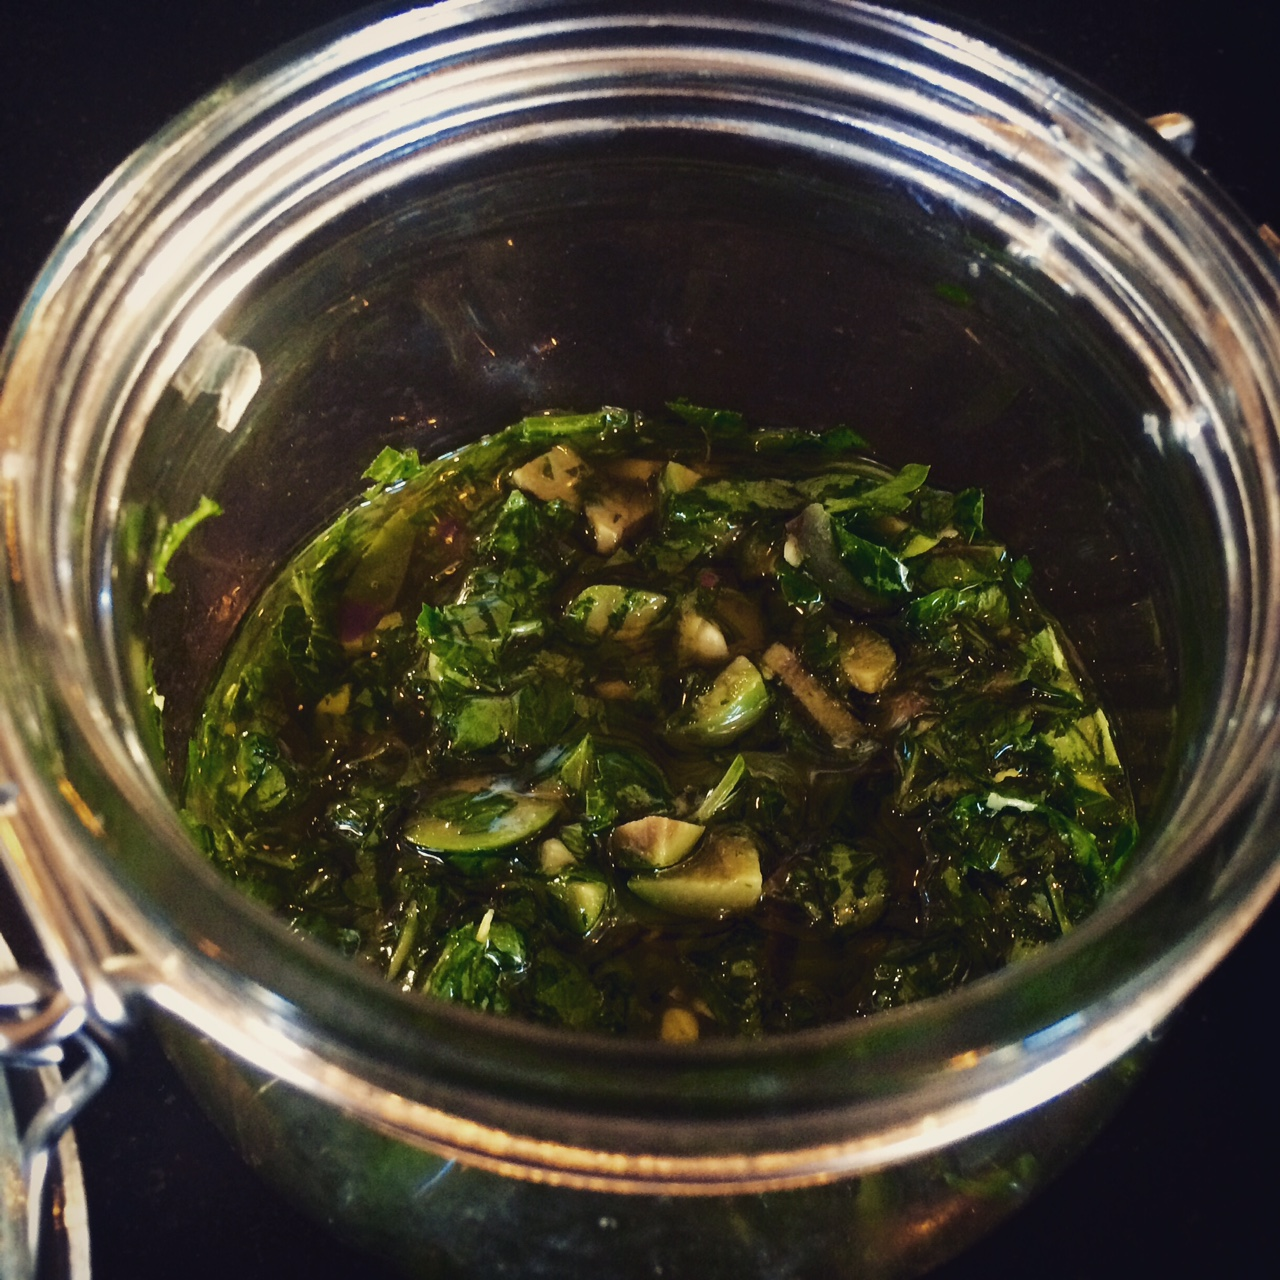 Salsa Verde in a jar by Patricia for Casagiove